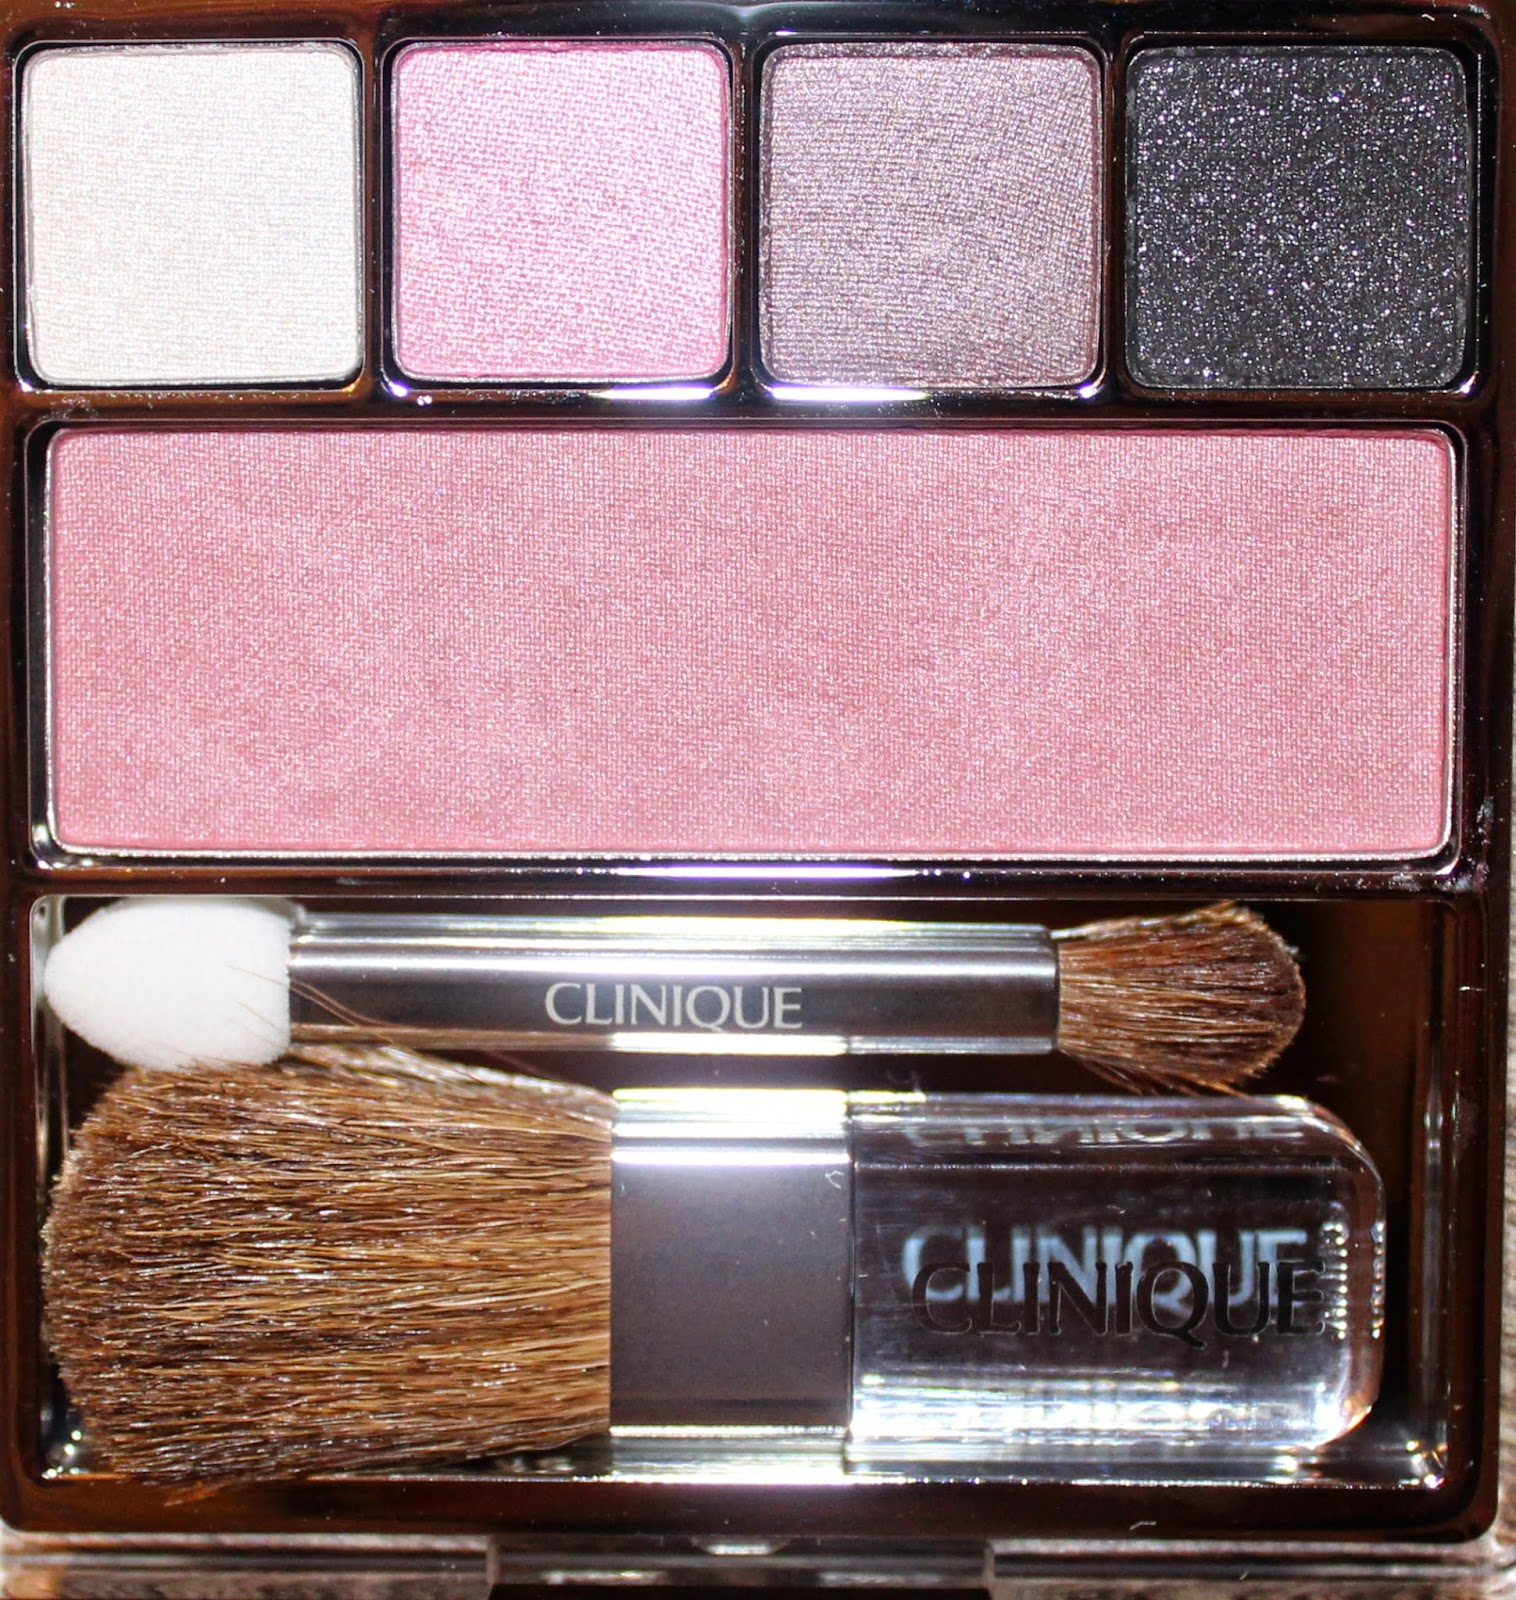 Clinique's The Nutcracker Act 1 Palette